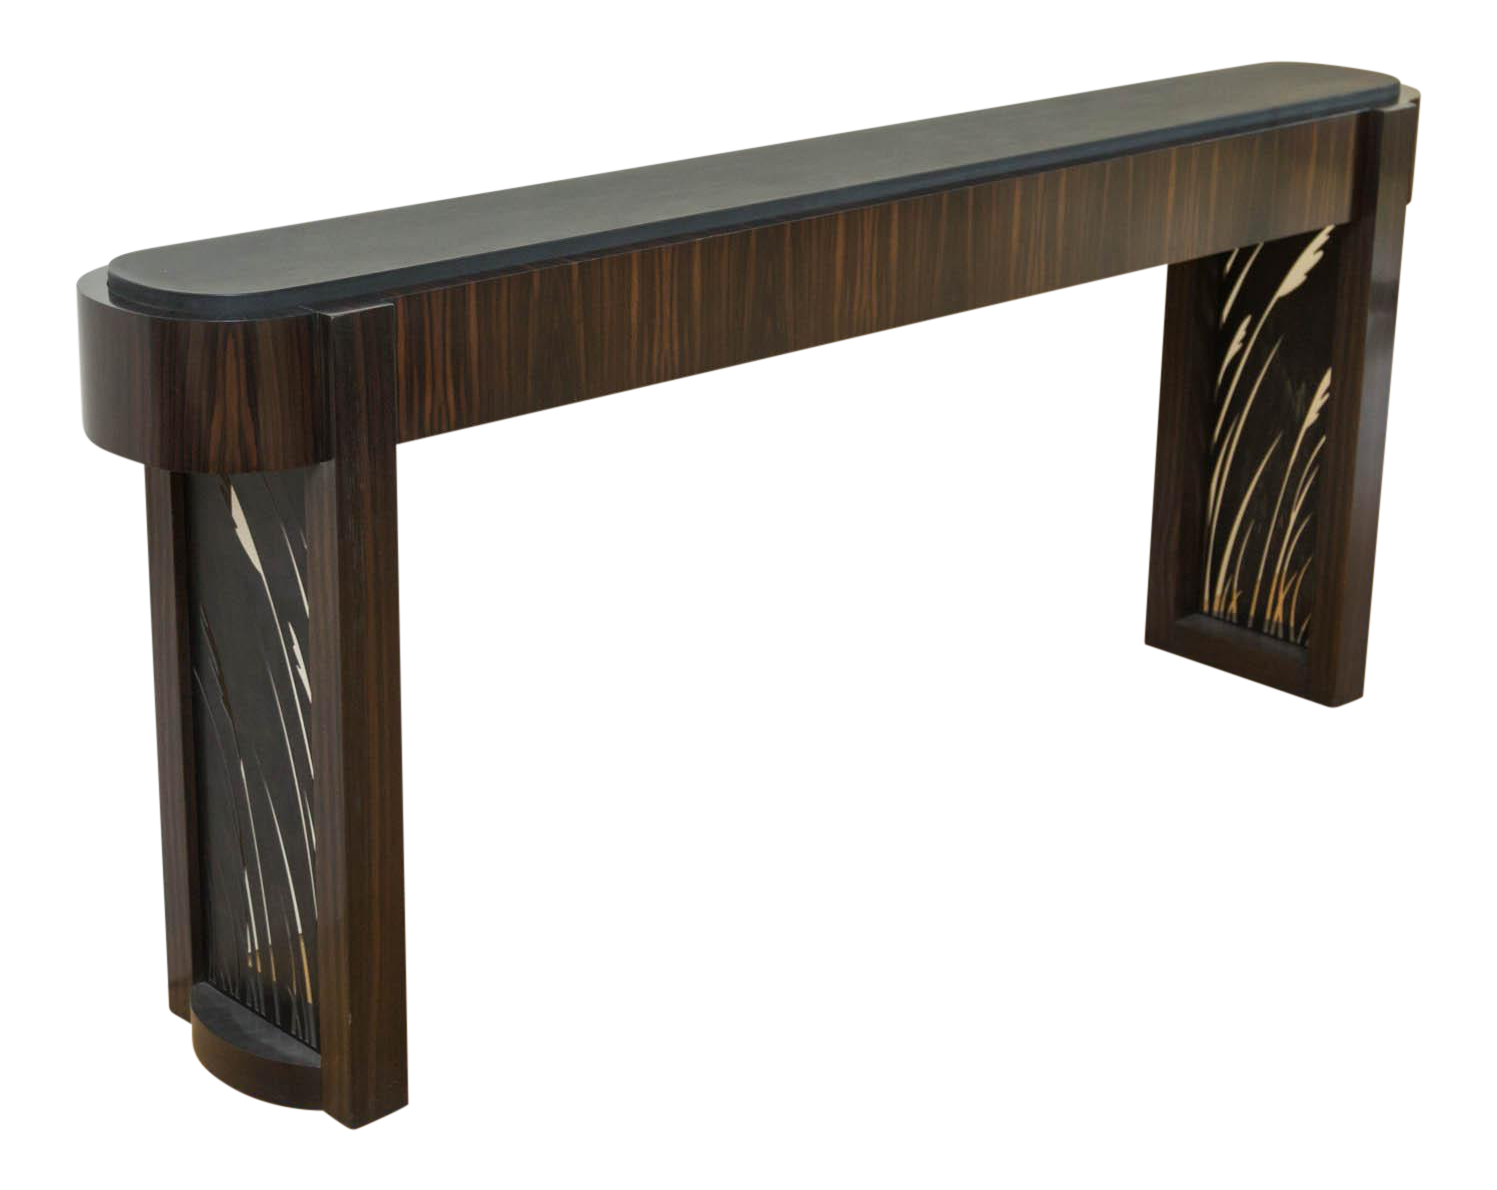 Fine macassar ebony and patinated steel console table by gregory fine macassar ebony and patinated steel console table by gregory clark decaso geotapseo Image collections